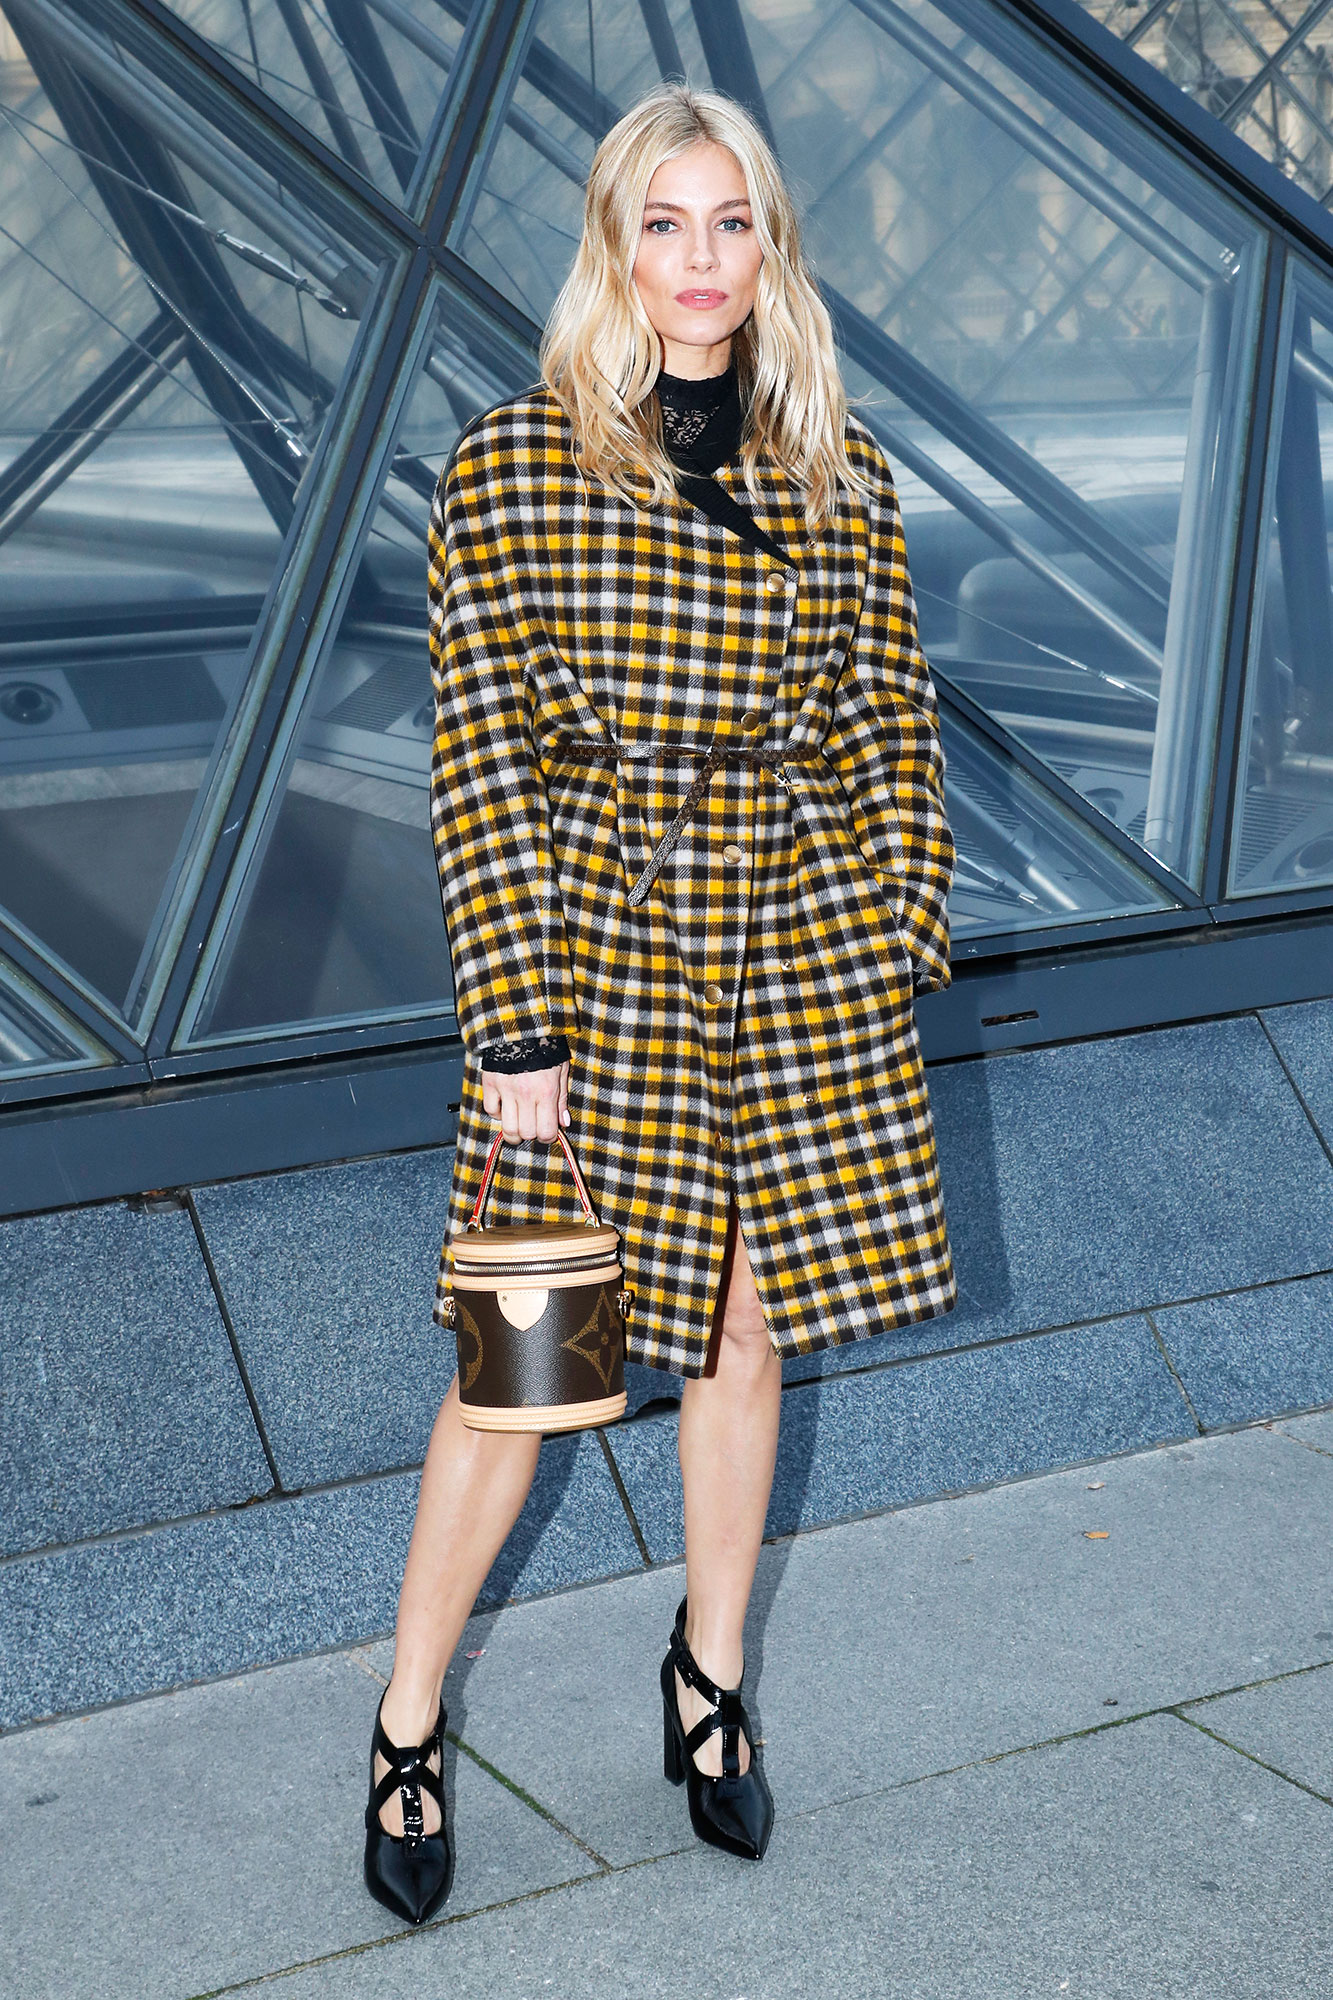 Sienna Miller Stars Closed Out Paris Fashion Week on a Sartorial High Note - We love how the blonde beauty belted her preppy plaid coat outside Louis Vuitton on Tuesday, March 5.